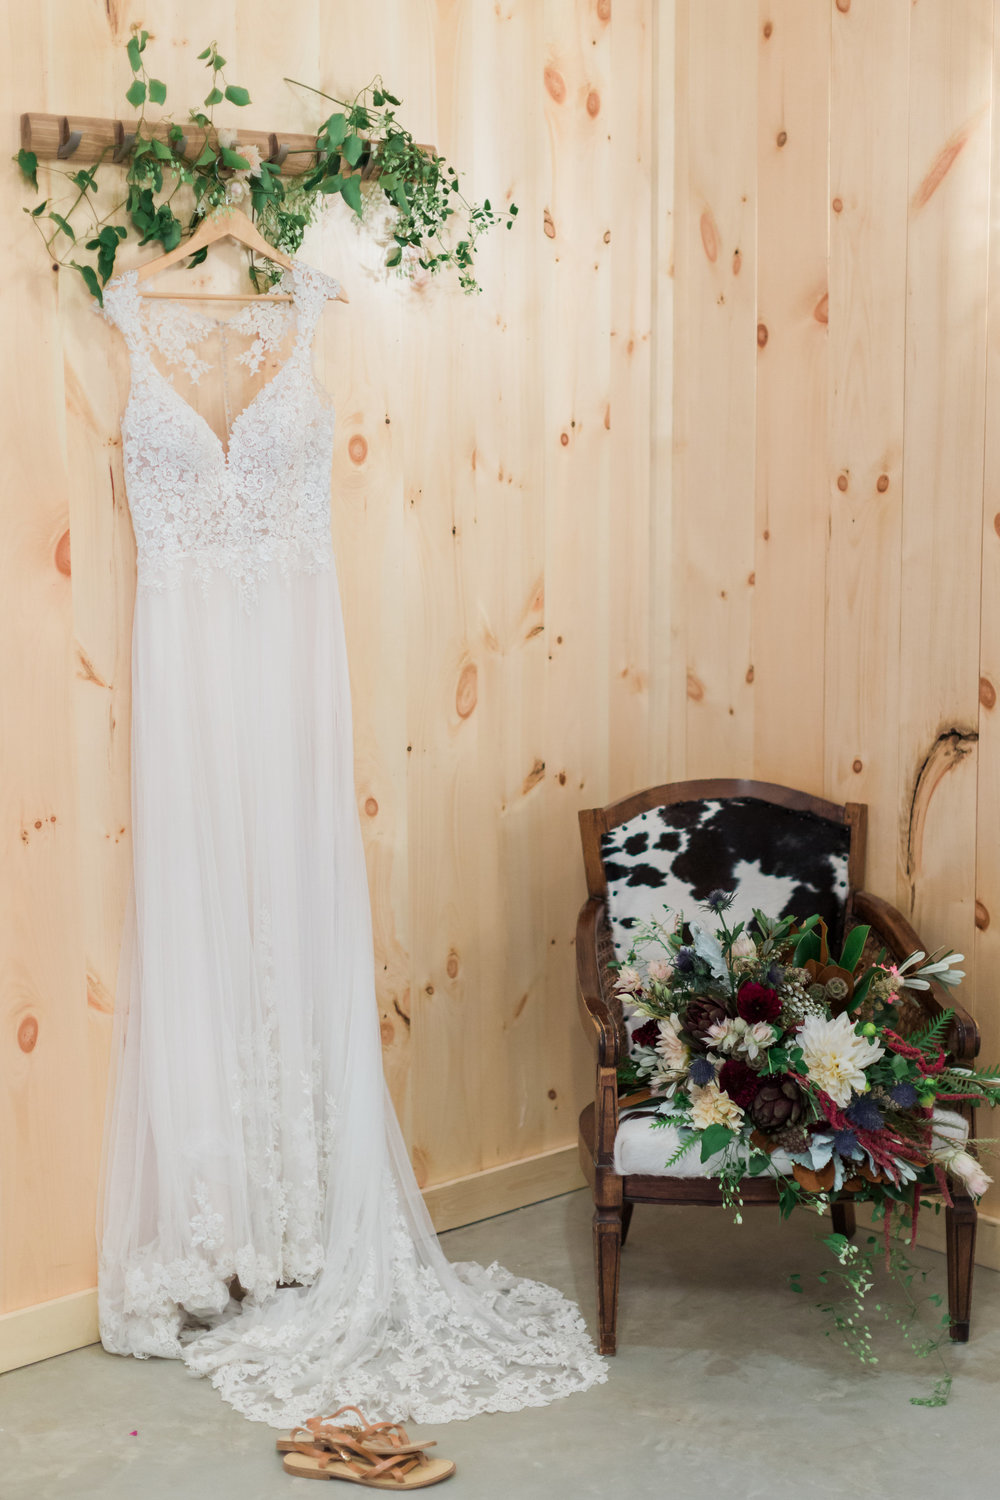 bridal-suite-white-lace-dress-cowhide-vintage-boho-bridal-bouquet-country-lane-lodge-adel-iowa-wedding-venue-iowa-wedding-planned-by-mostly-becky-weddings